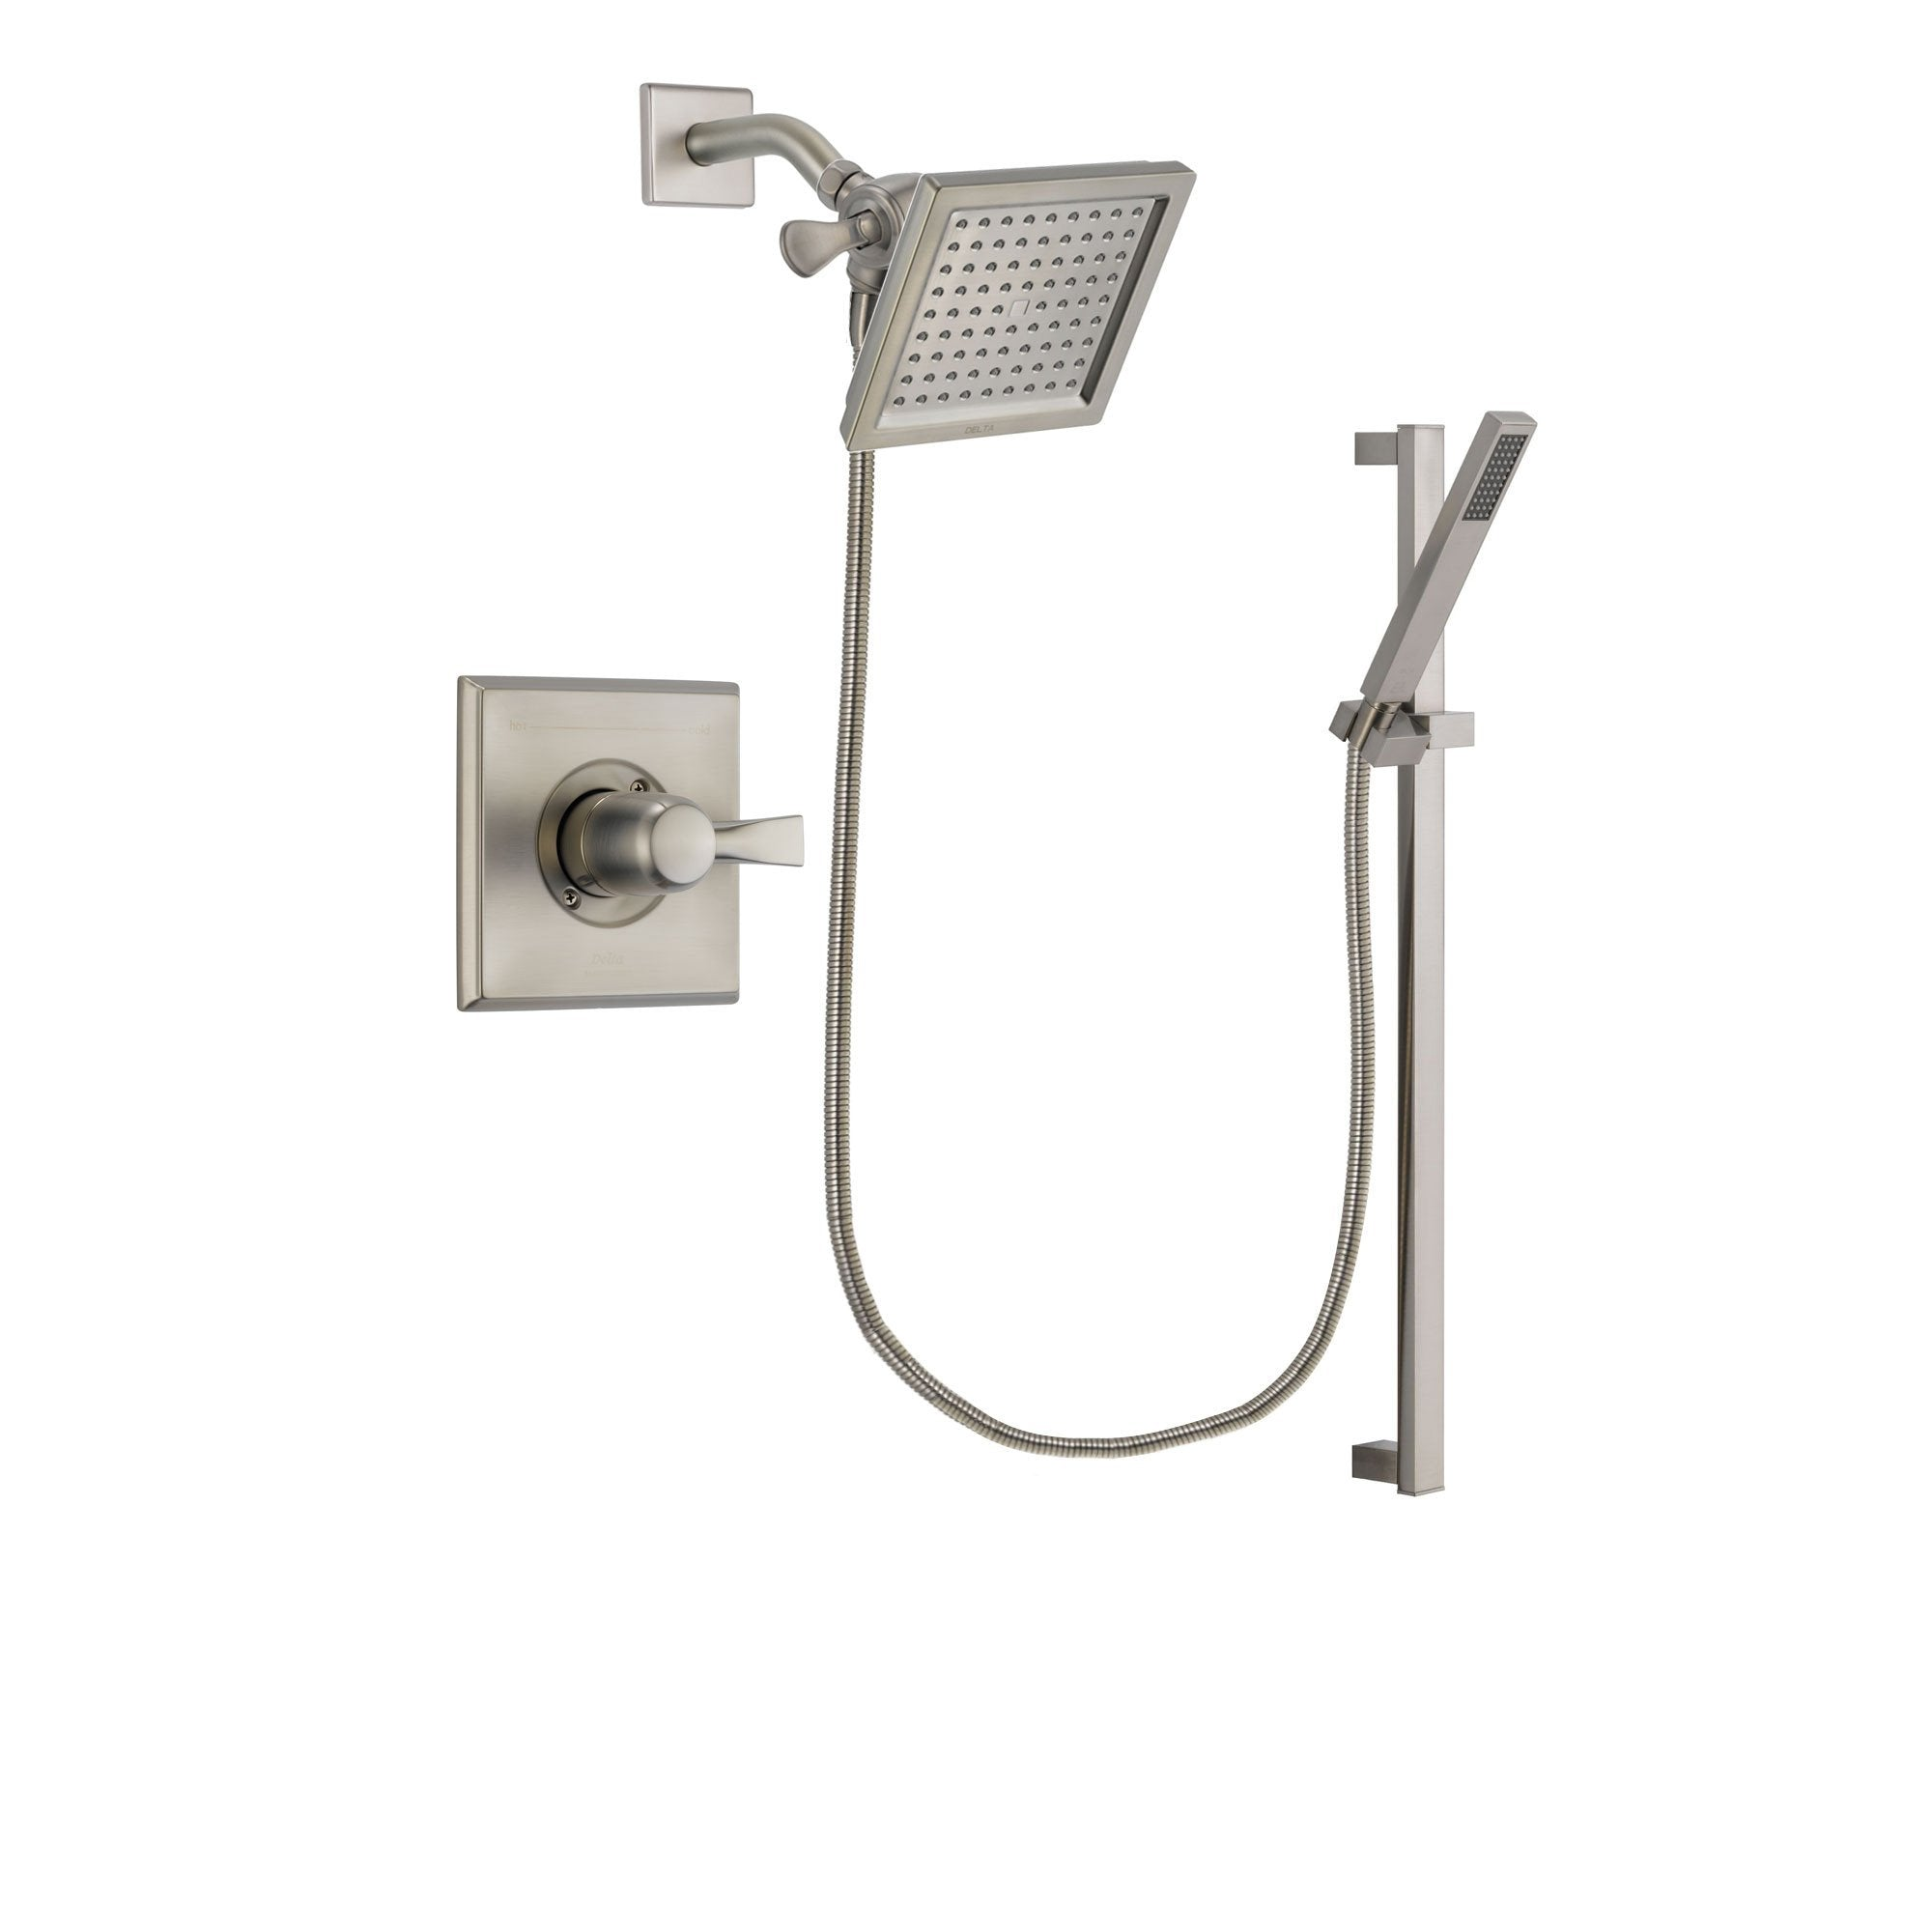 Delta Dryden Stainless Steel Finish Shower Faucet System Package With  6.5 Inch Square Rain Showerhead